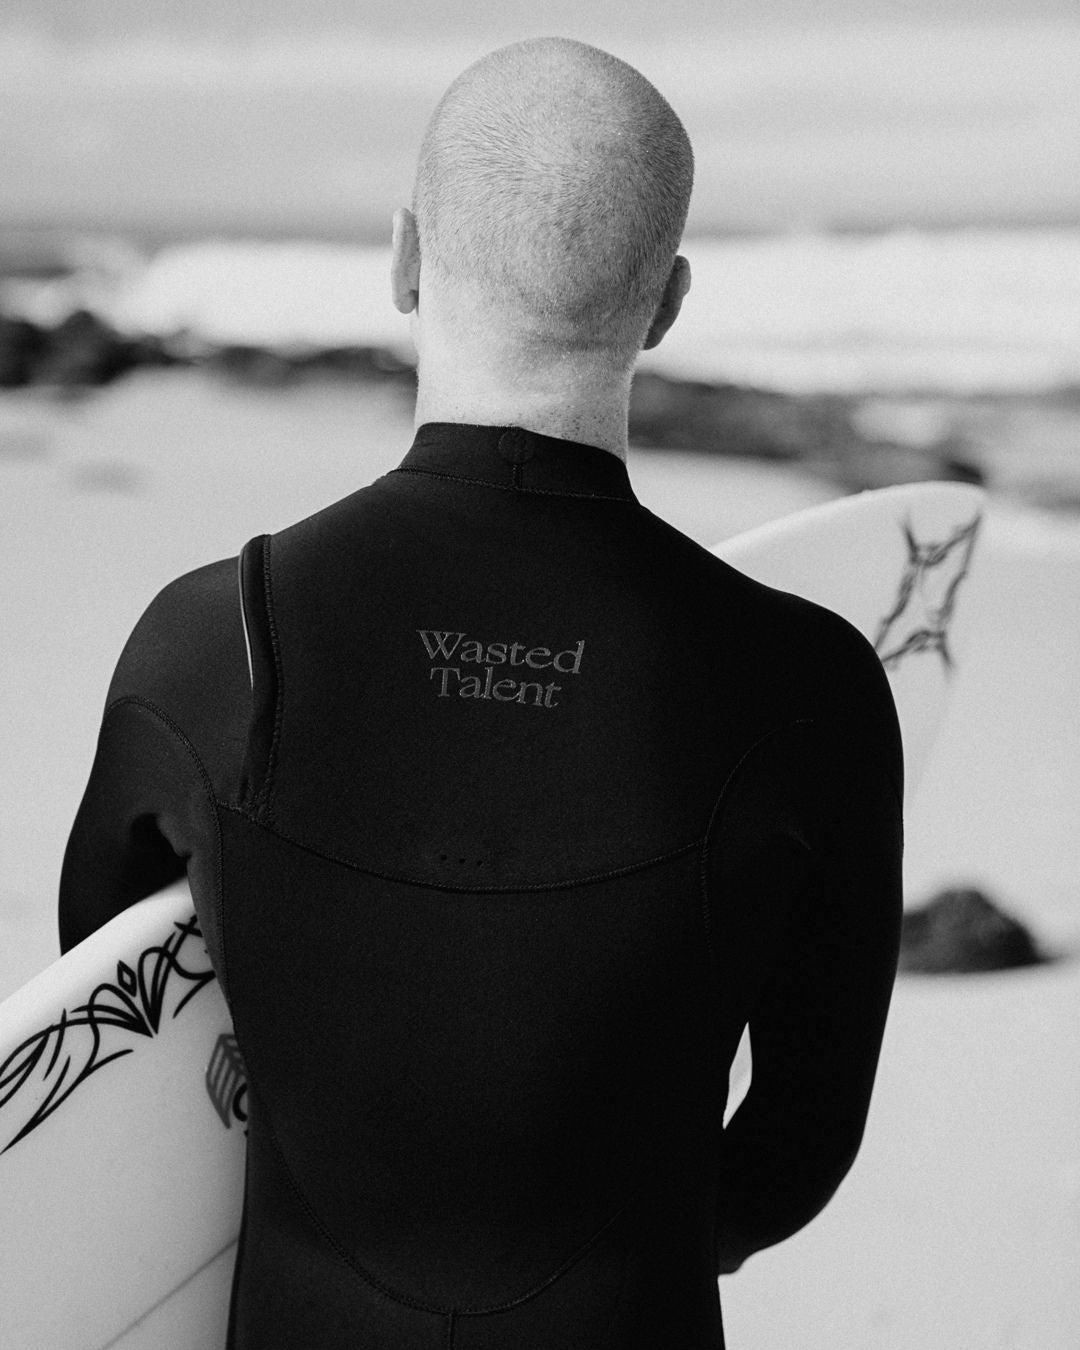 chippa wilson surfing for wasted talent and adelio wetsuits collab